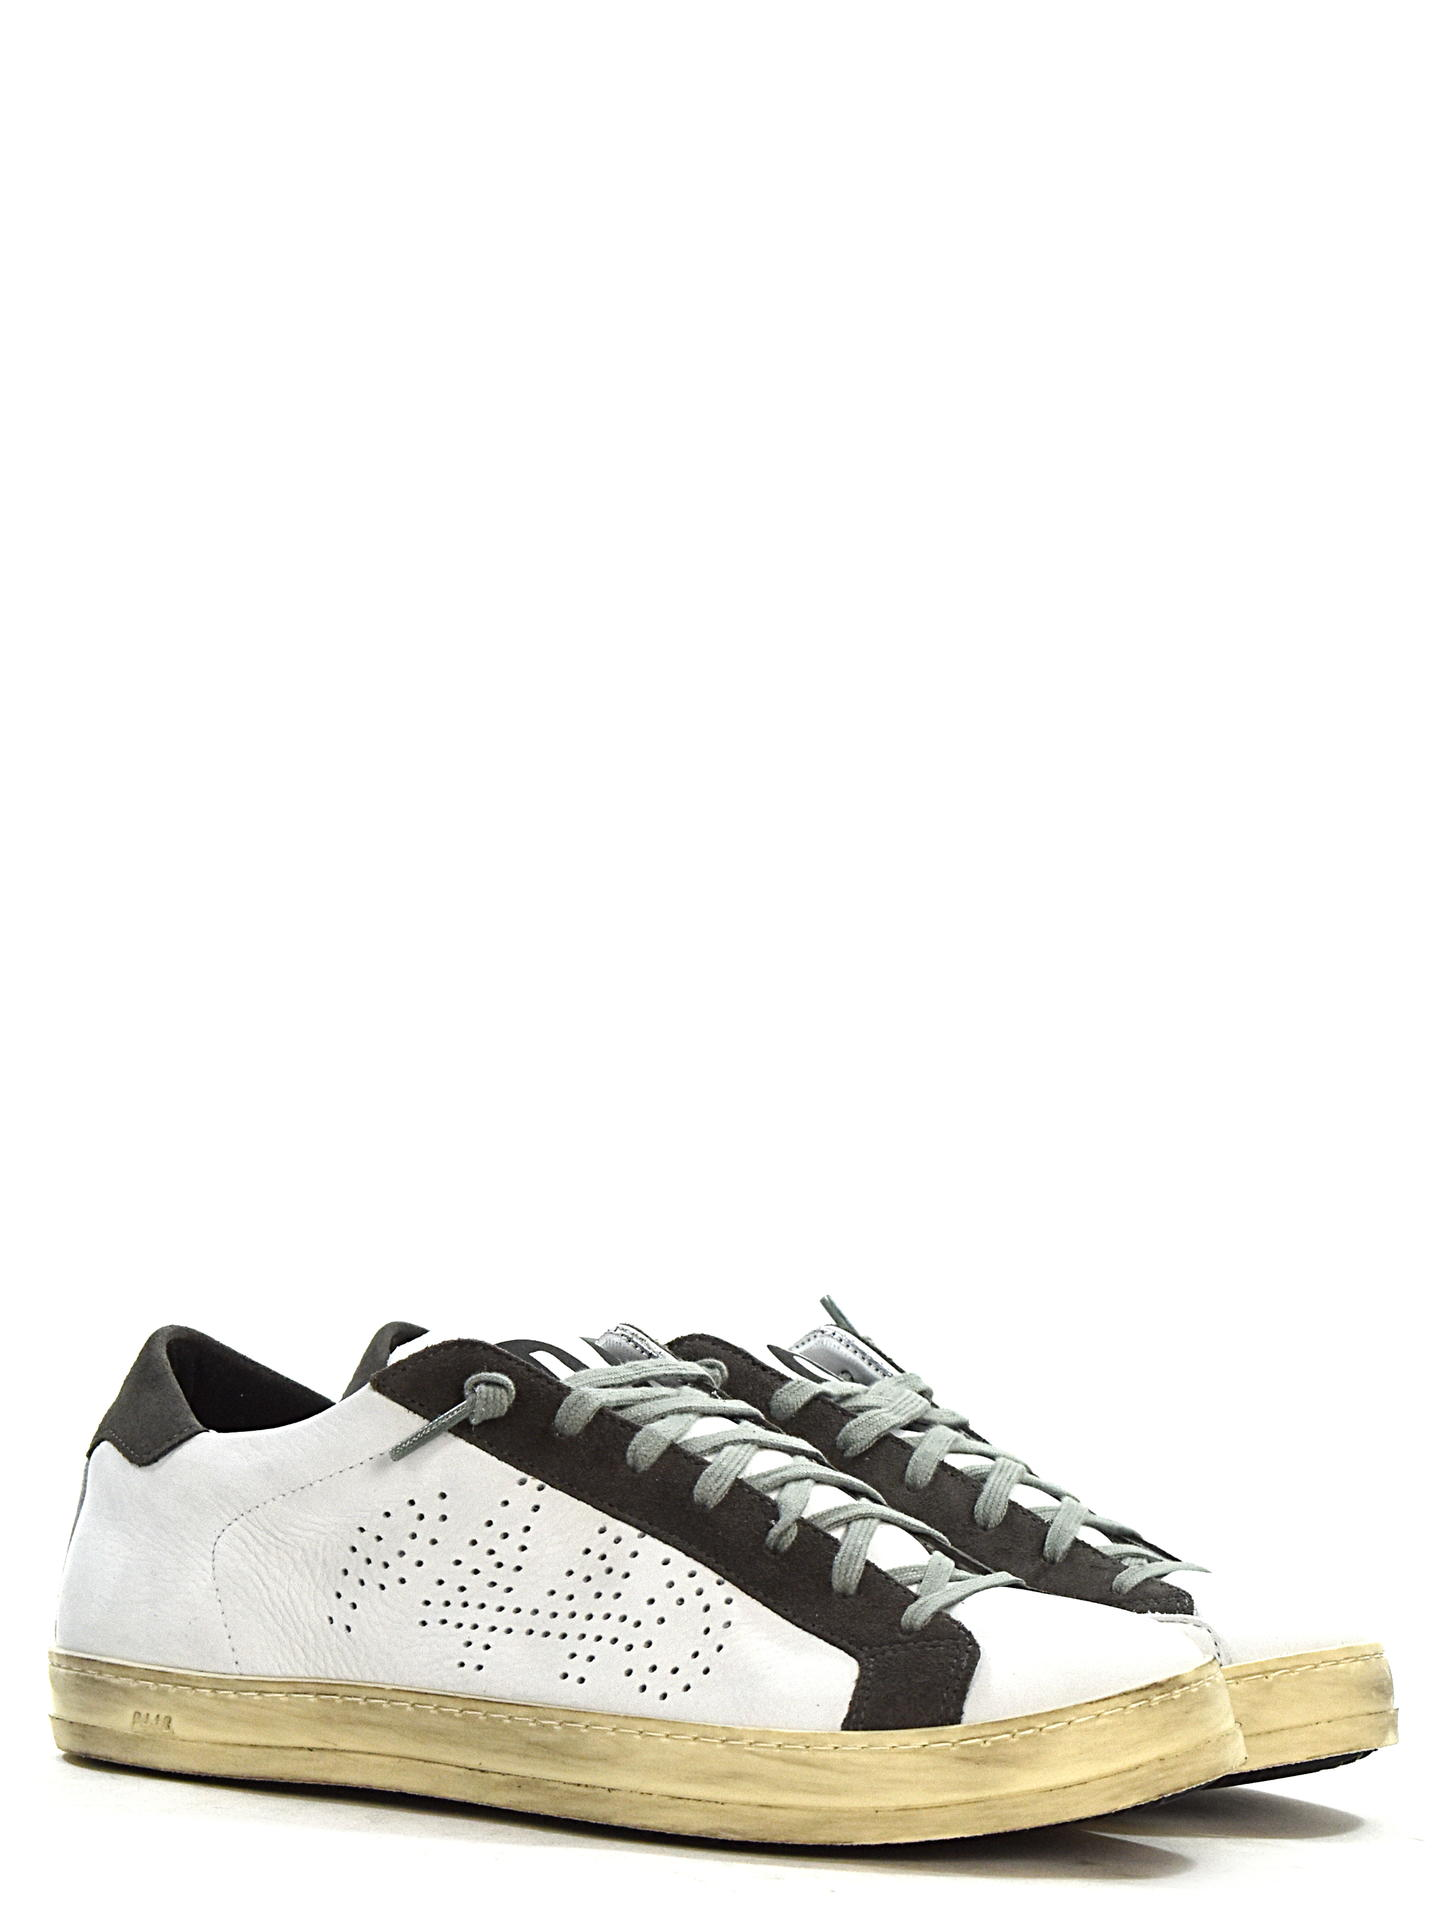 SNEAKERS P448 JOHNC BIANCO